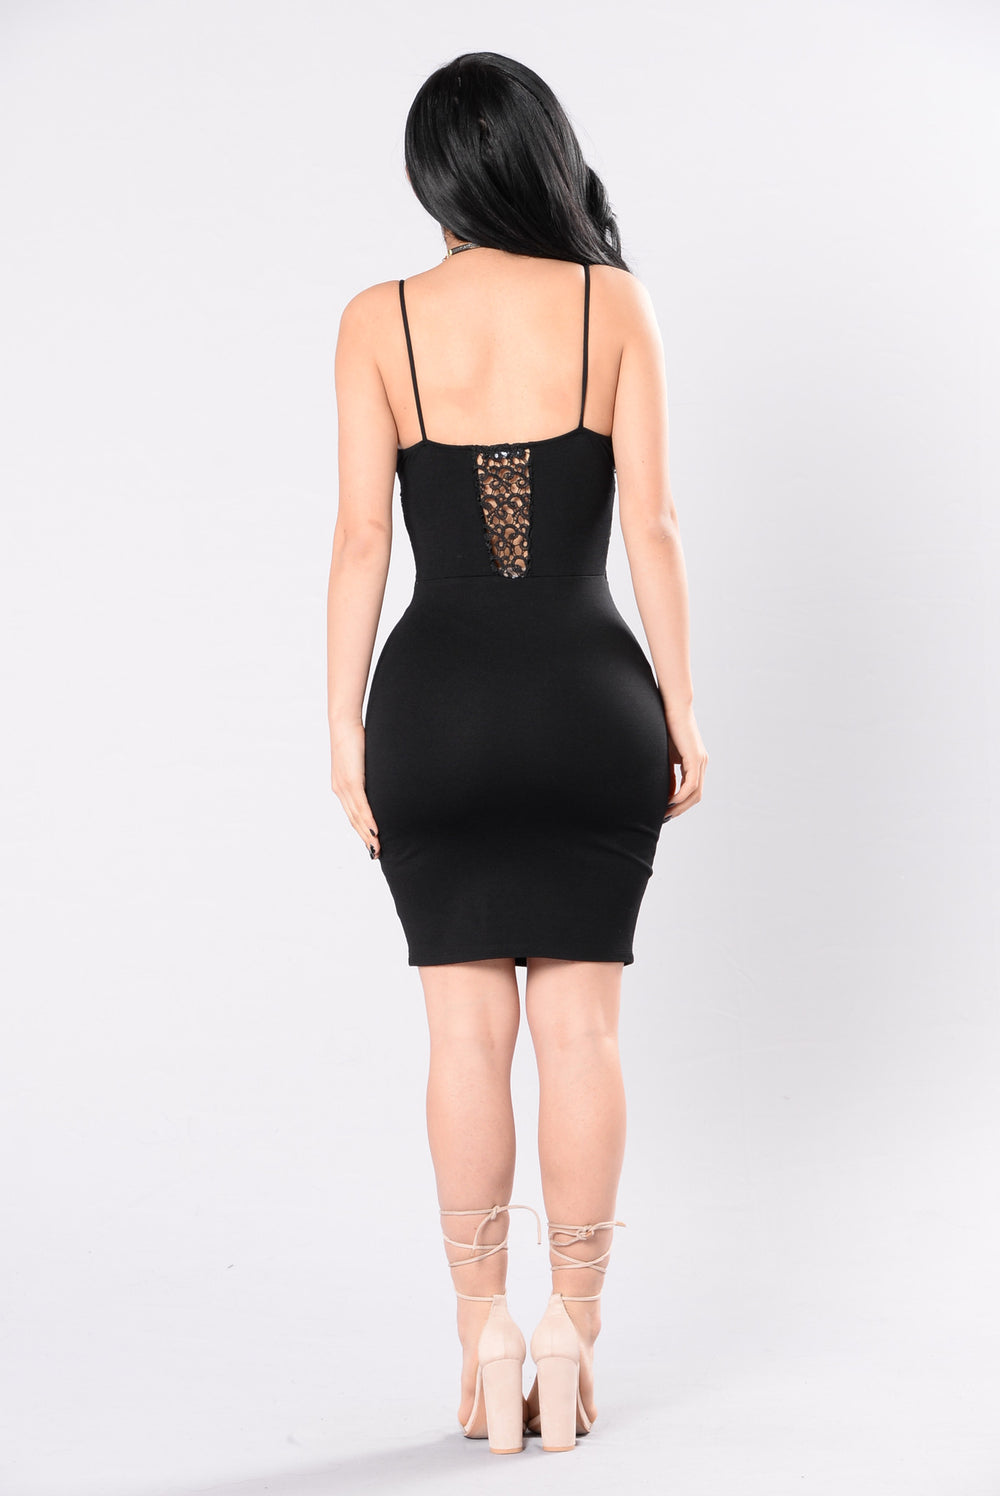 Don't Miss This Dress - Black